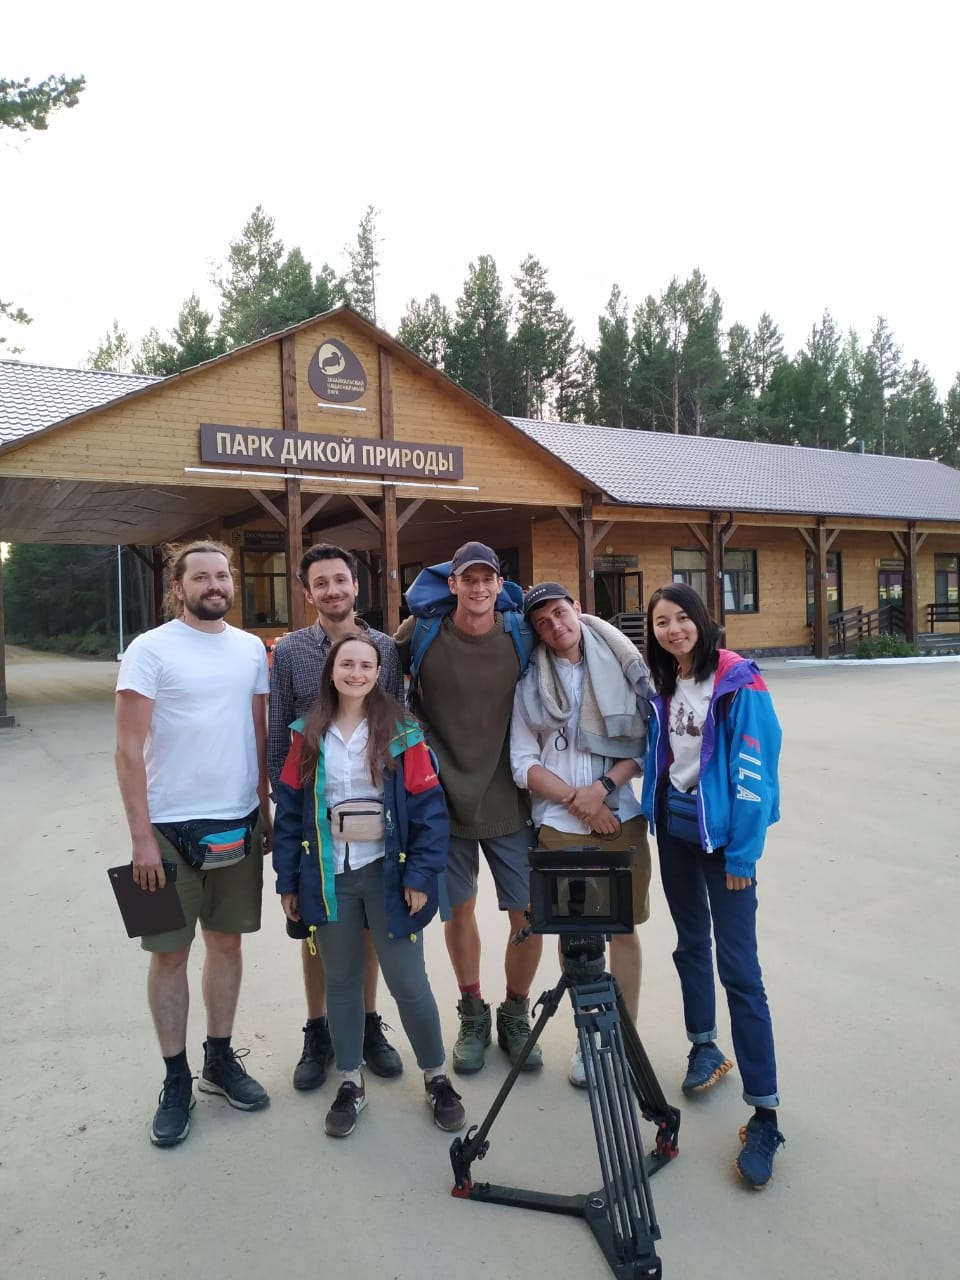 Results of the Foundation's working trip to the Baikal natural territory